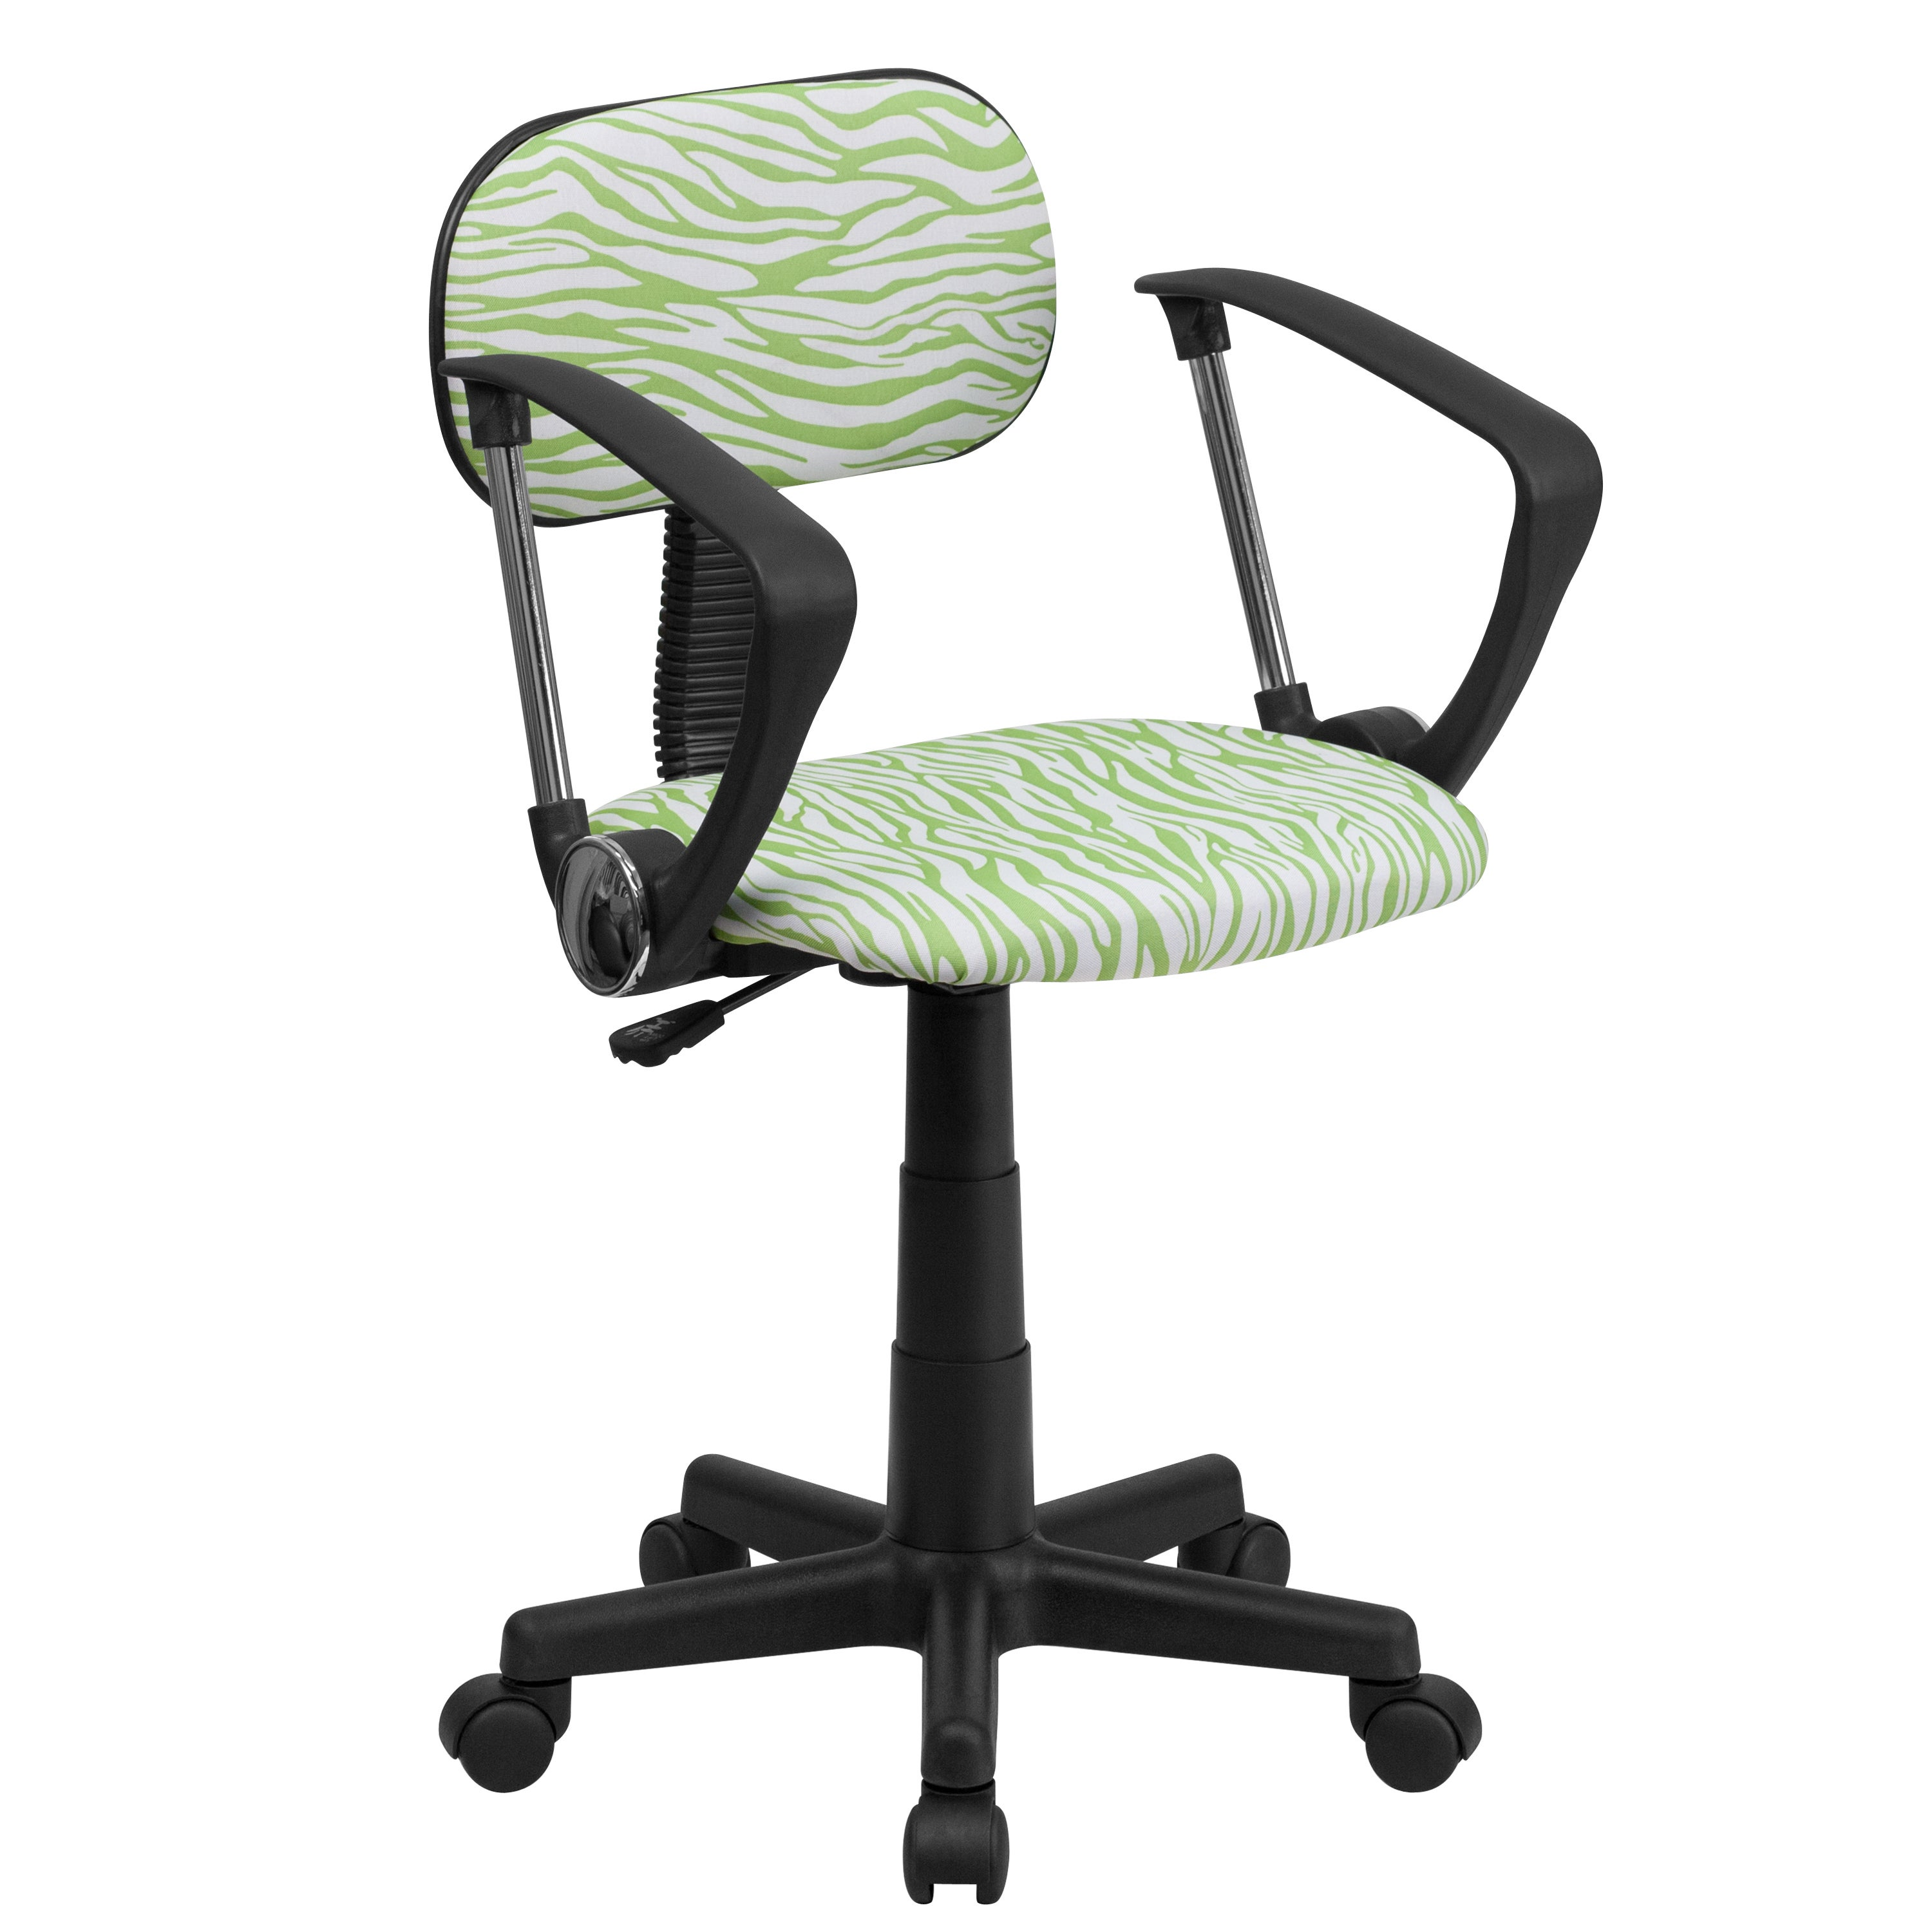 FLASH Furniture Zebra Print Computer Chair with Arms (Gre...